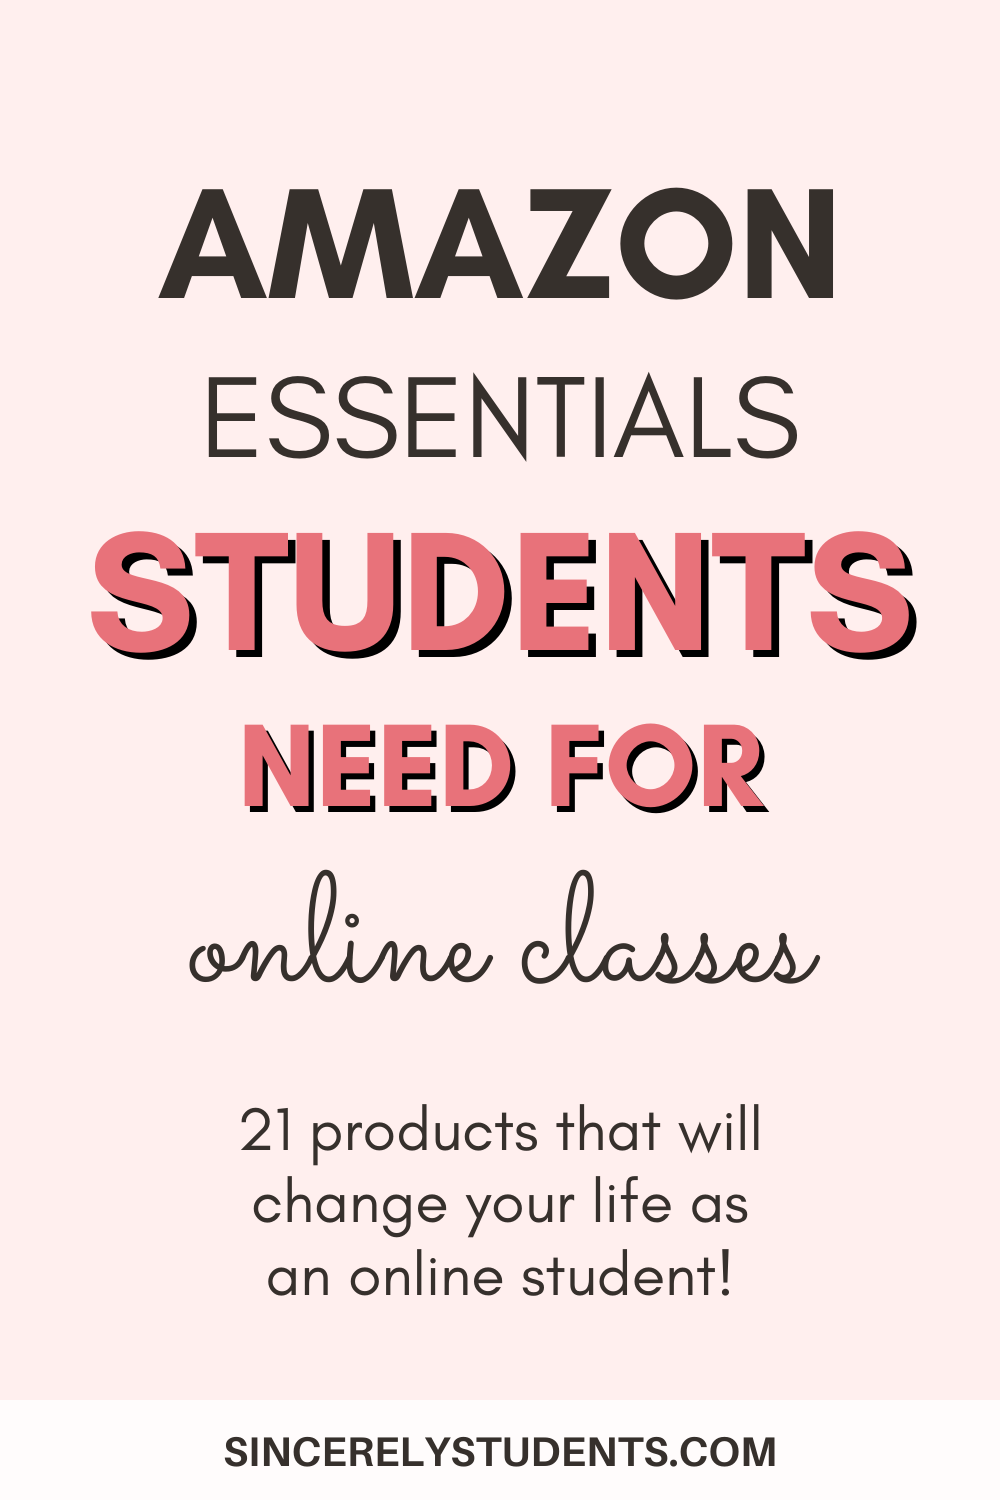 Check out these 21 life-changing products from Amazon that will make online classes a breeze to survive and thrive in! Ace your online classes and become healthier and happier with these tools! #Amazon #onlineclass